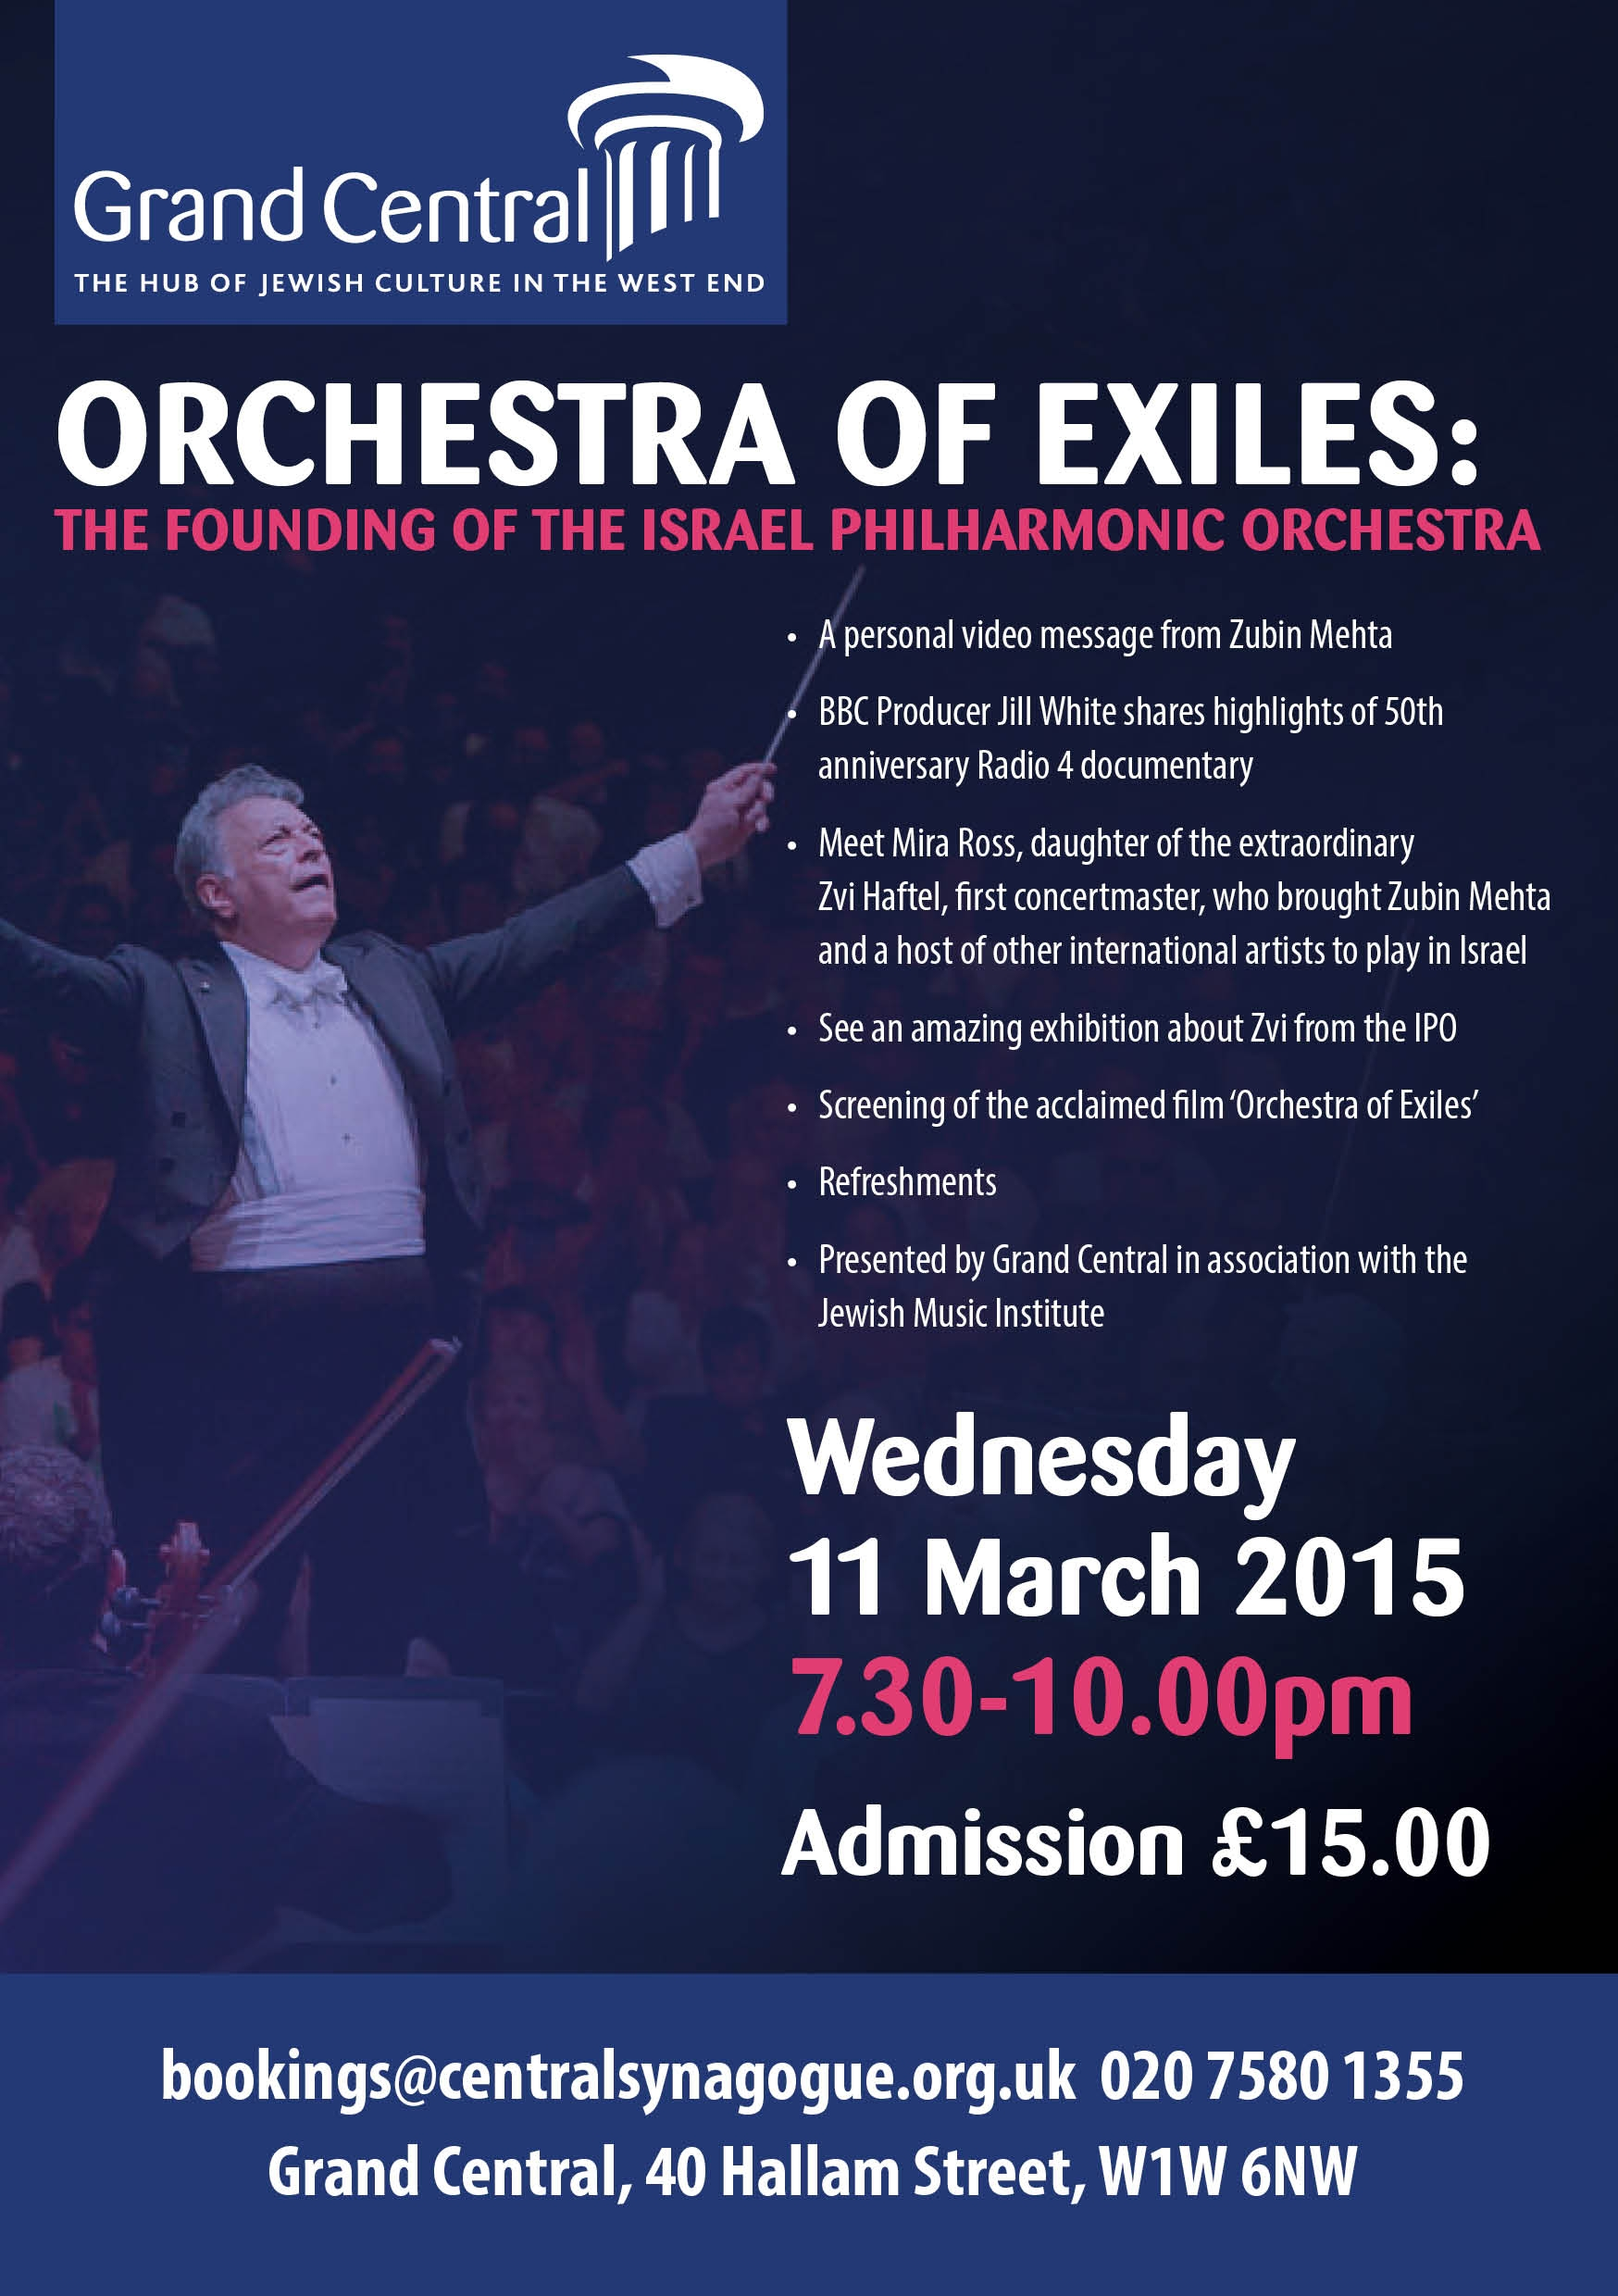 ORCHESTRA OF EXILES March 2015